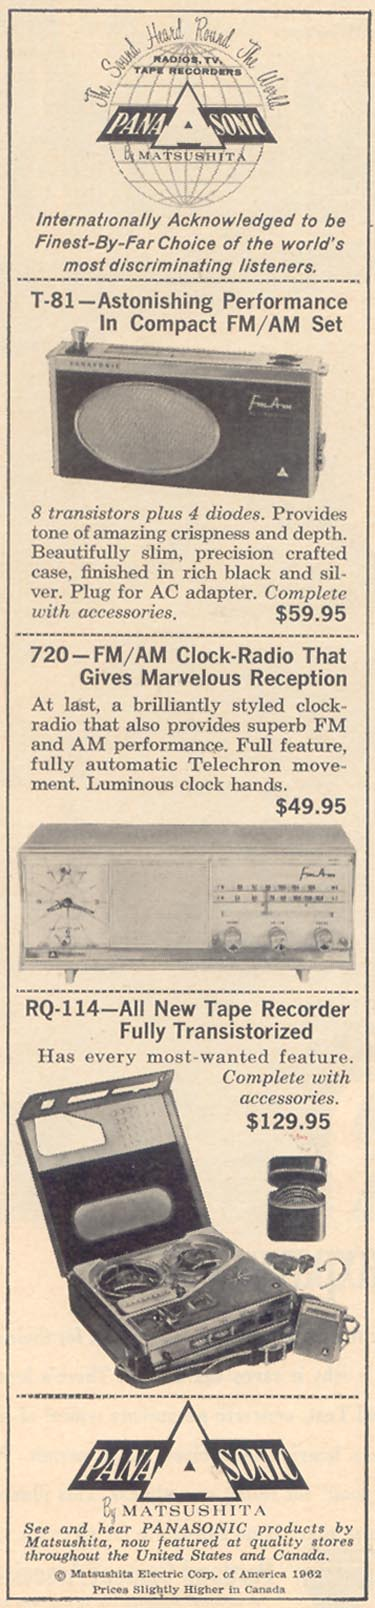 PANASONIC ELECTRONIC EQUIPMENT TIME 12/07/1962 p. 54